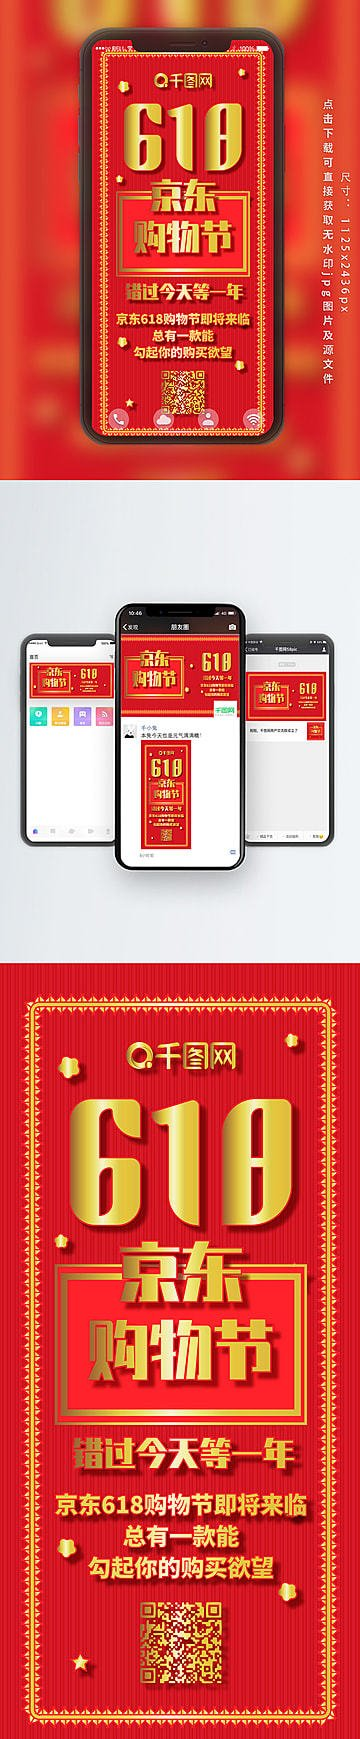 618 Jingdong shopping festival promotion Template